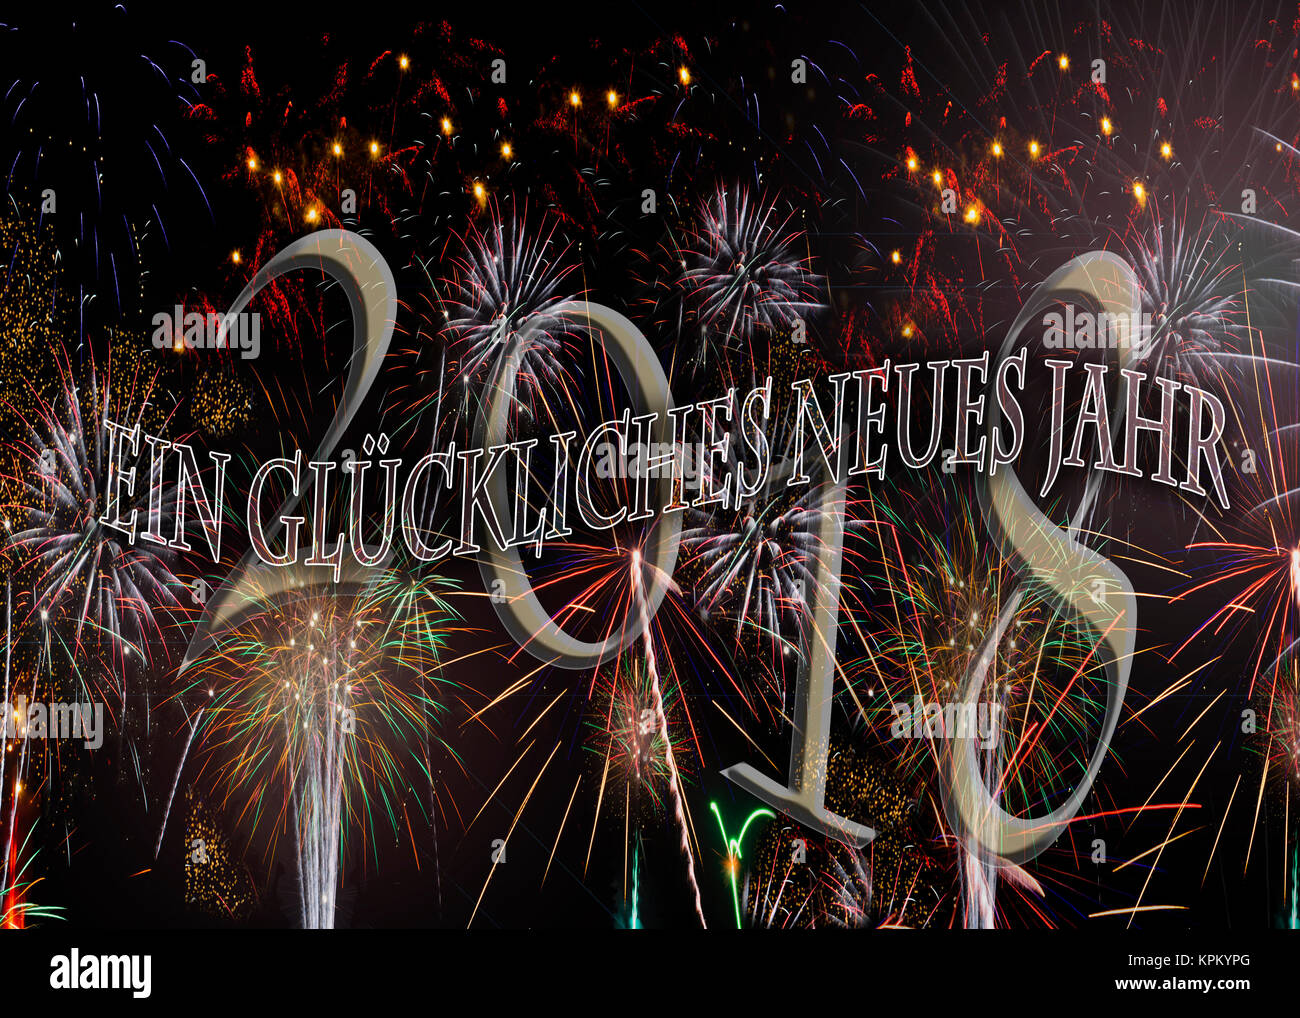 ein glckliches neues jahr fireworks happy new year in german others in german see kpkypd and kpkypa also in english and spanish